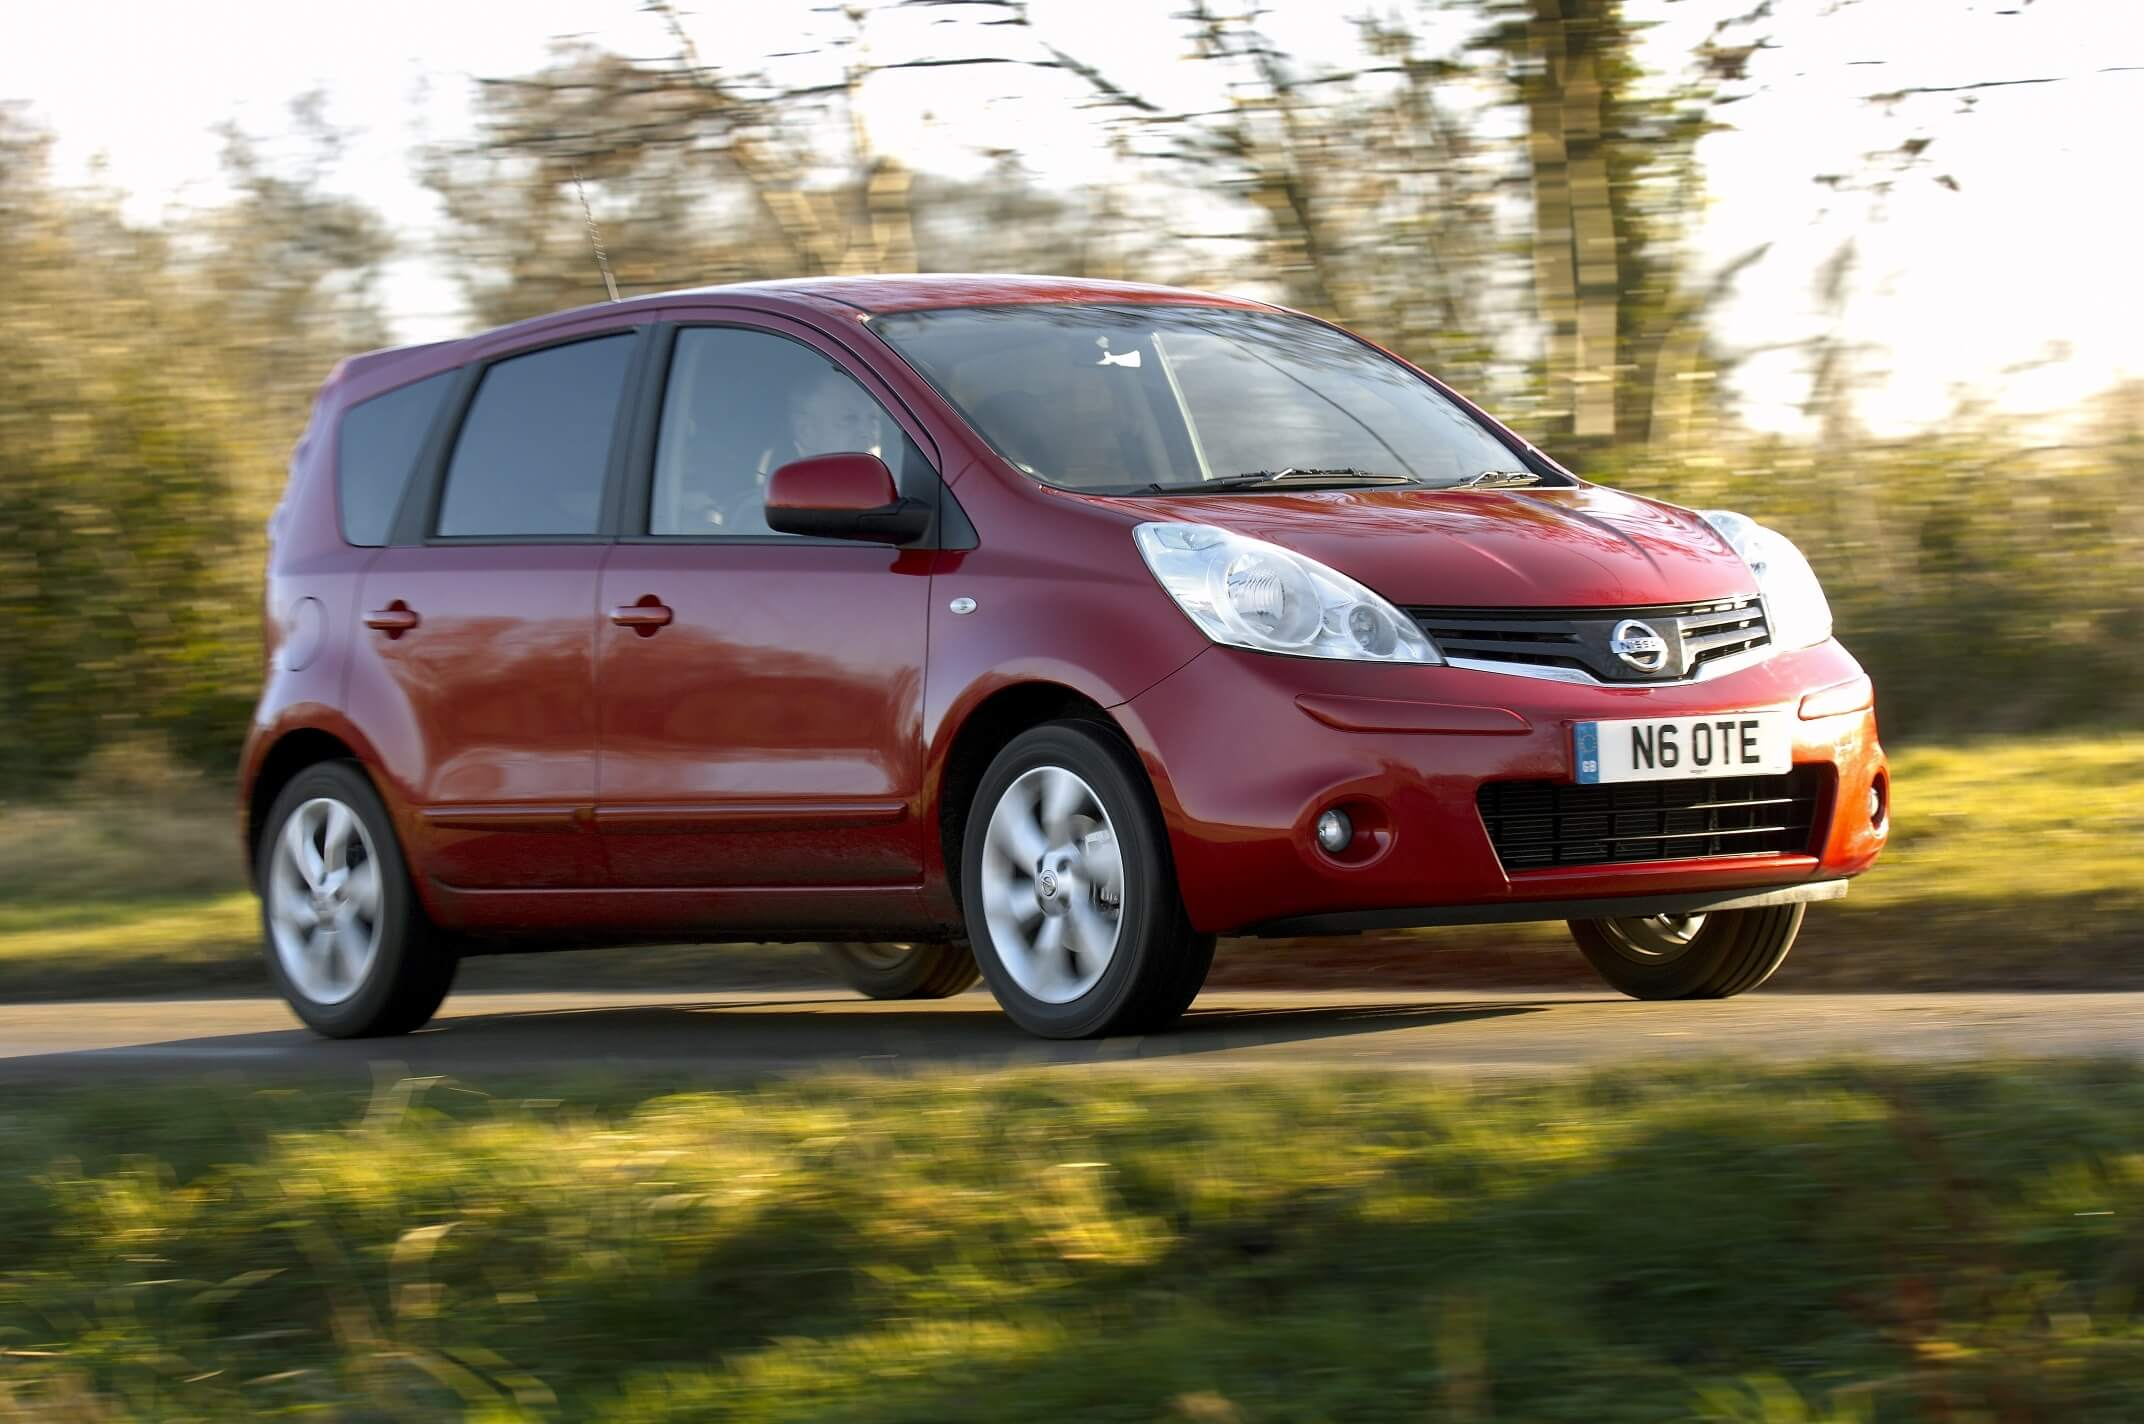 image of a Nissan Note